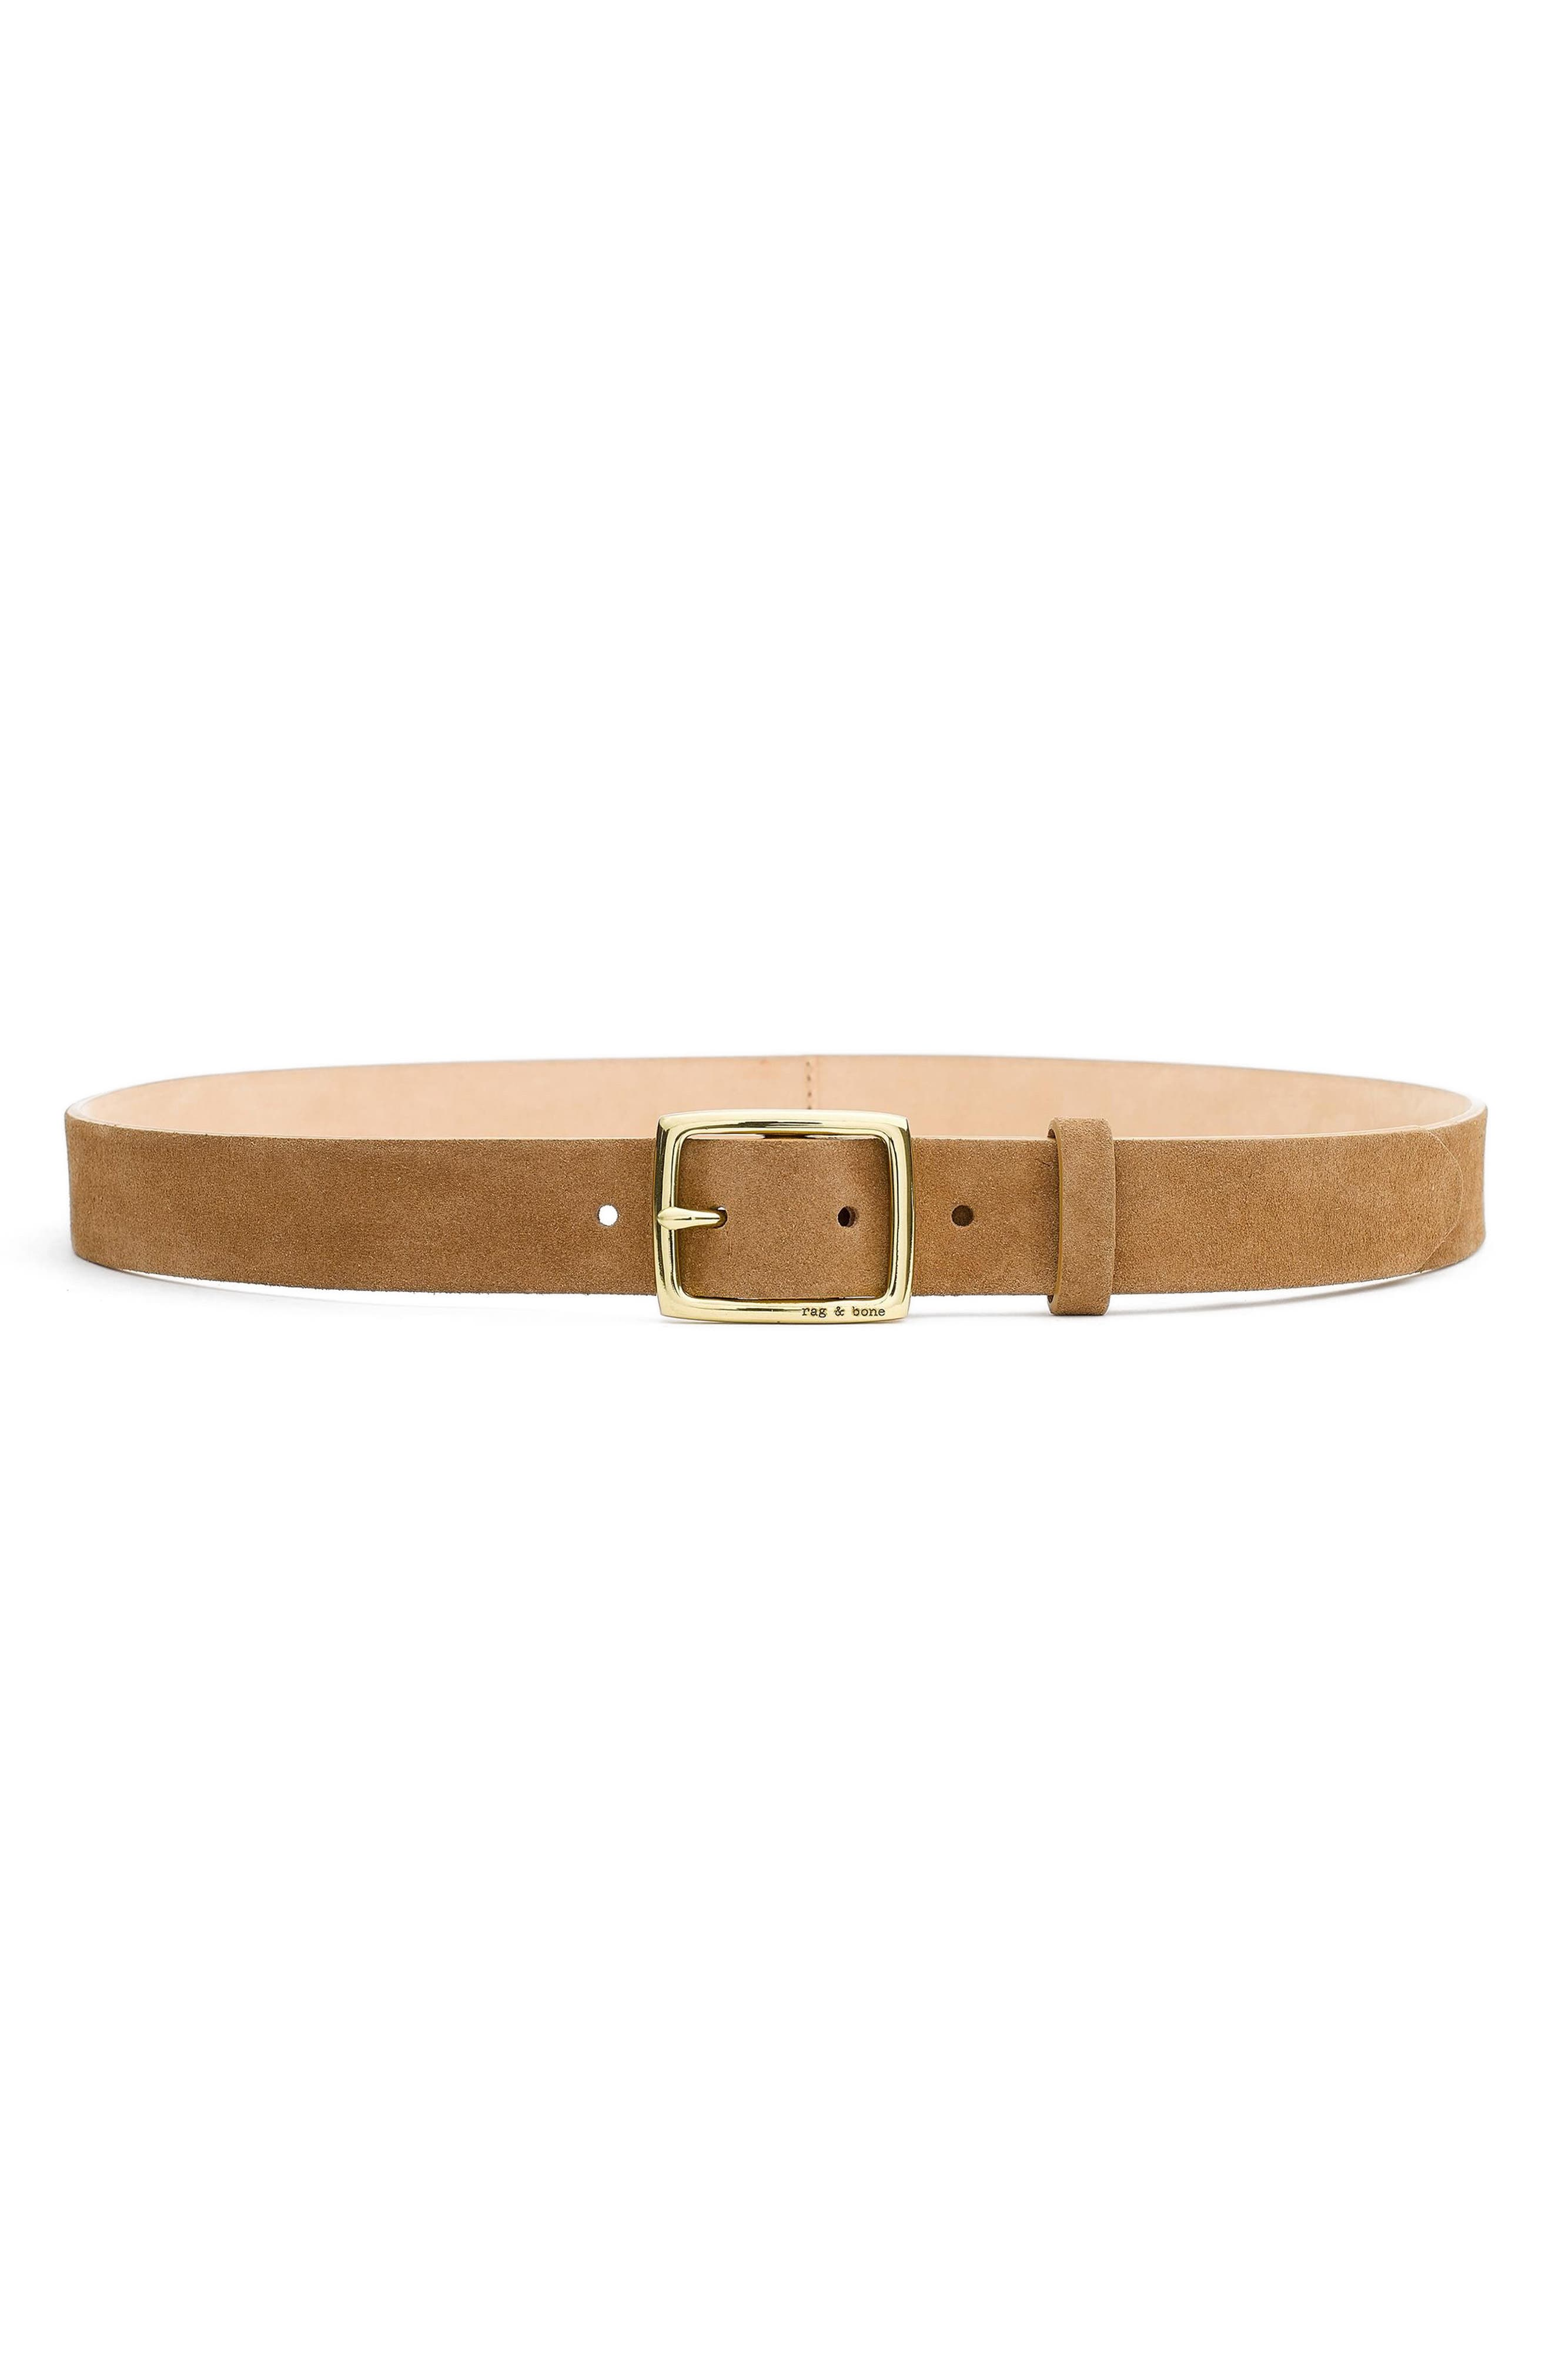 'Boyfriend' Leather Belt,                             Alternate thumbnail 2, color,                             CAMEL